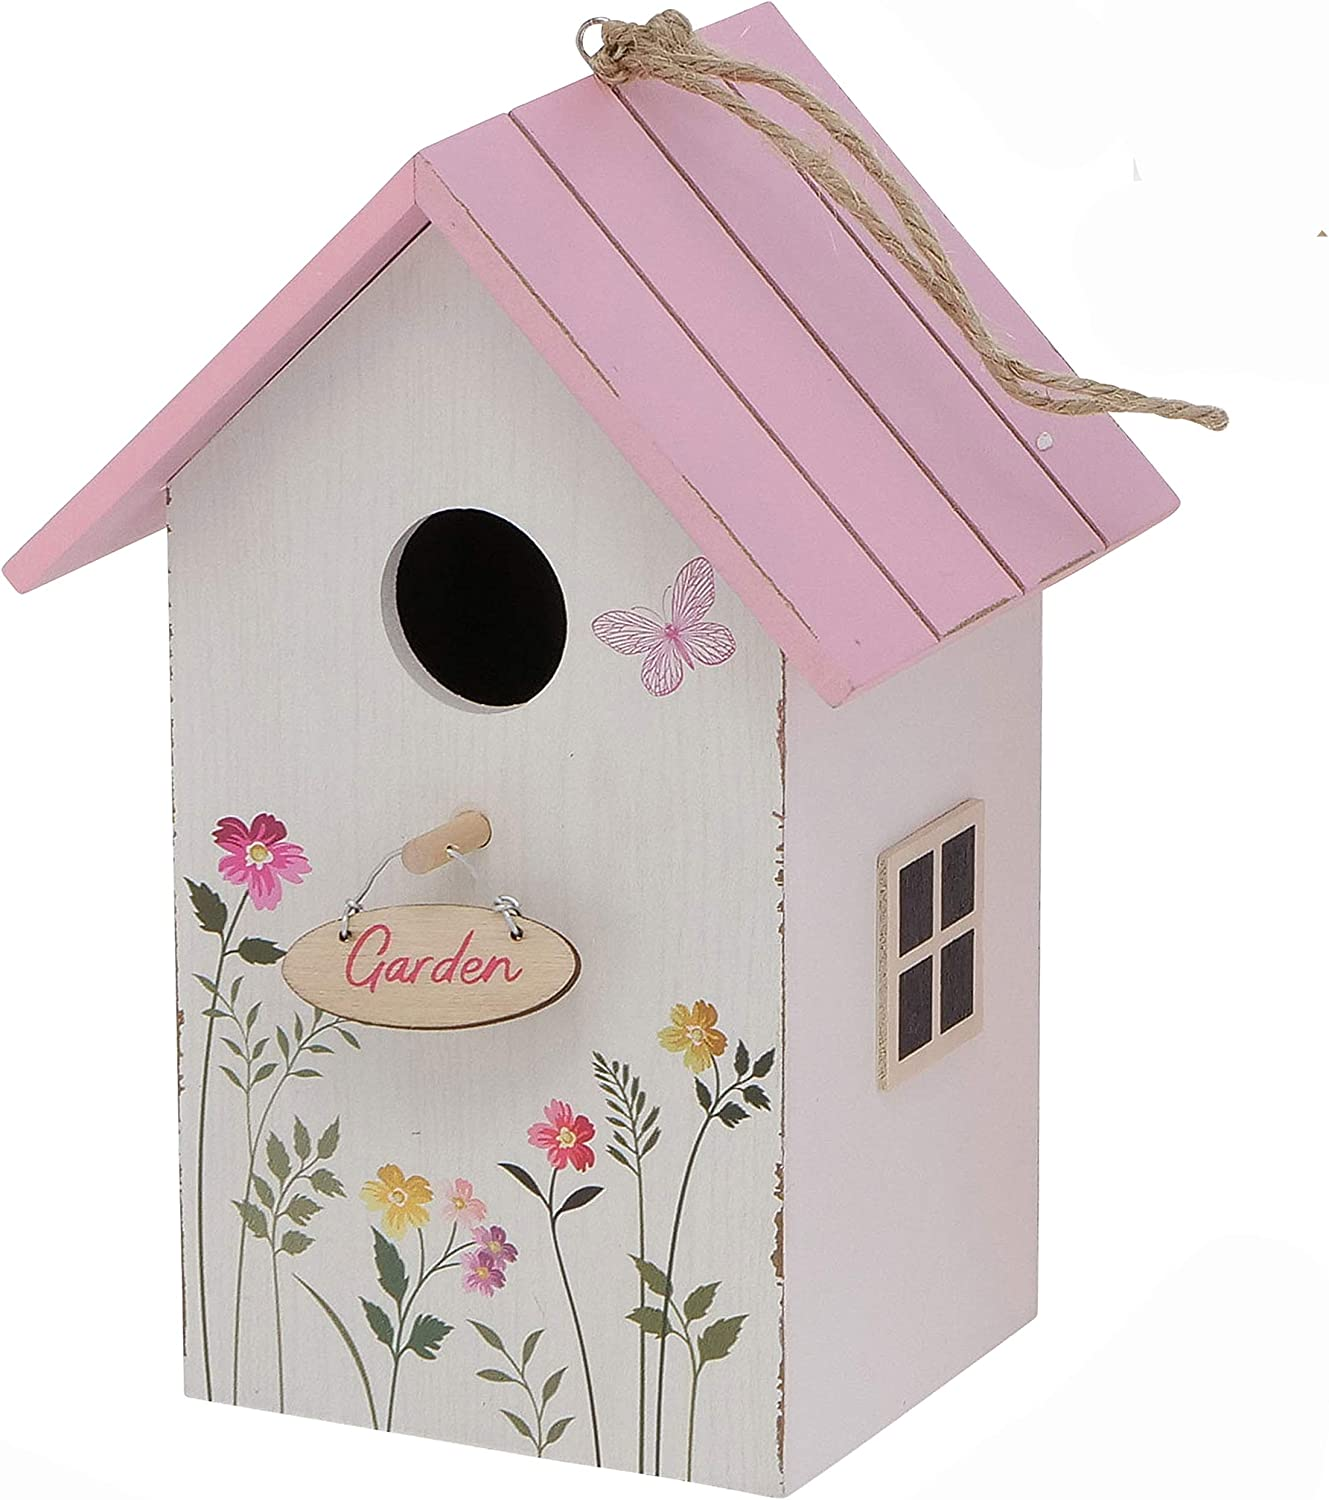 WHW Whole House Worlds Cozy Cottage Roof White Birdhouse P Ranking TOP3 with 5 ☆ very popular